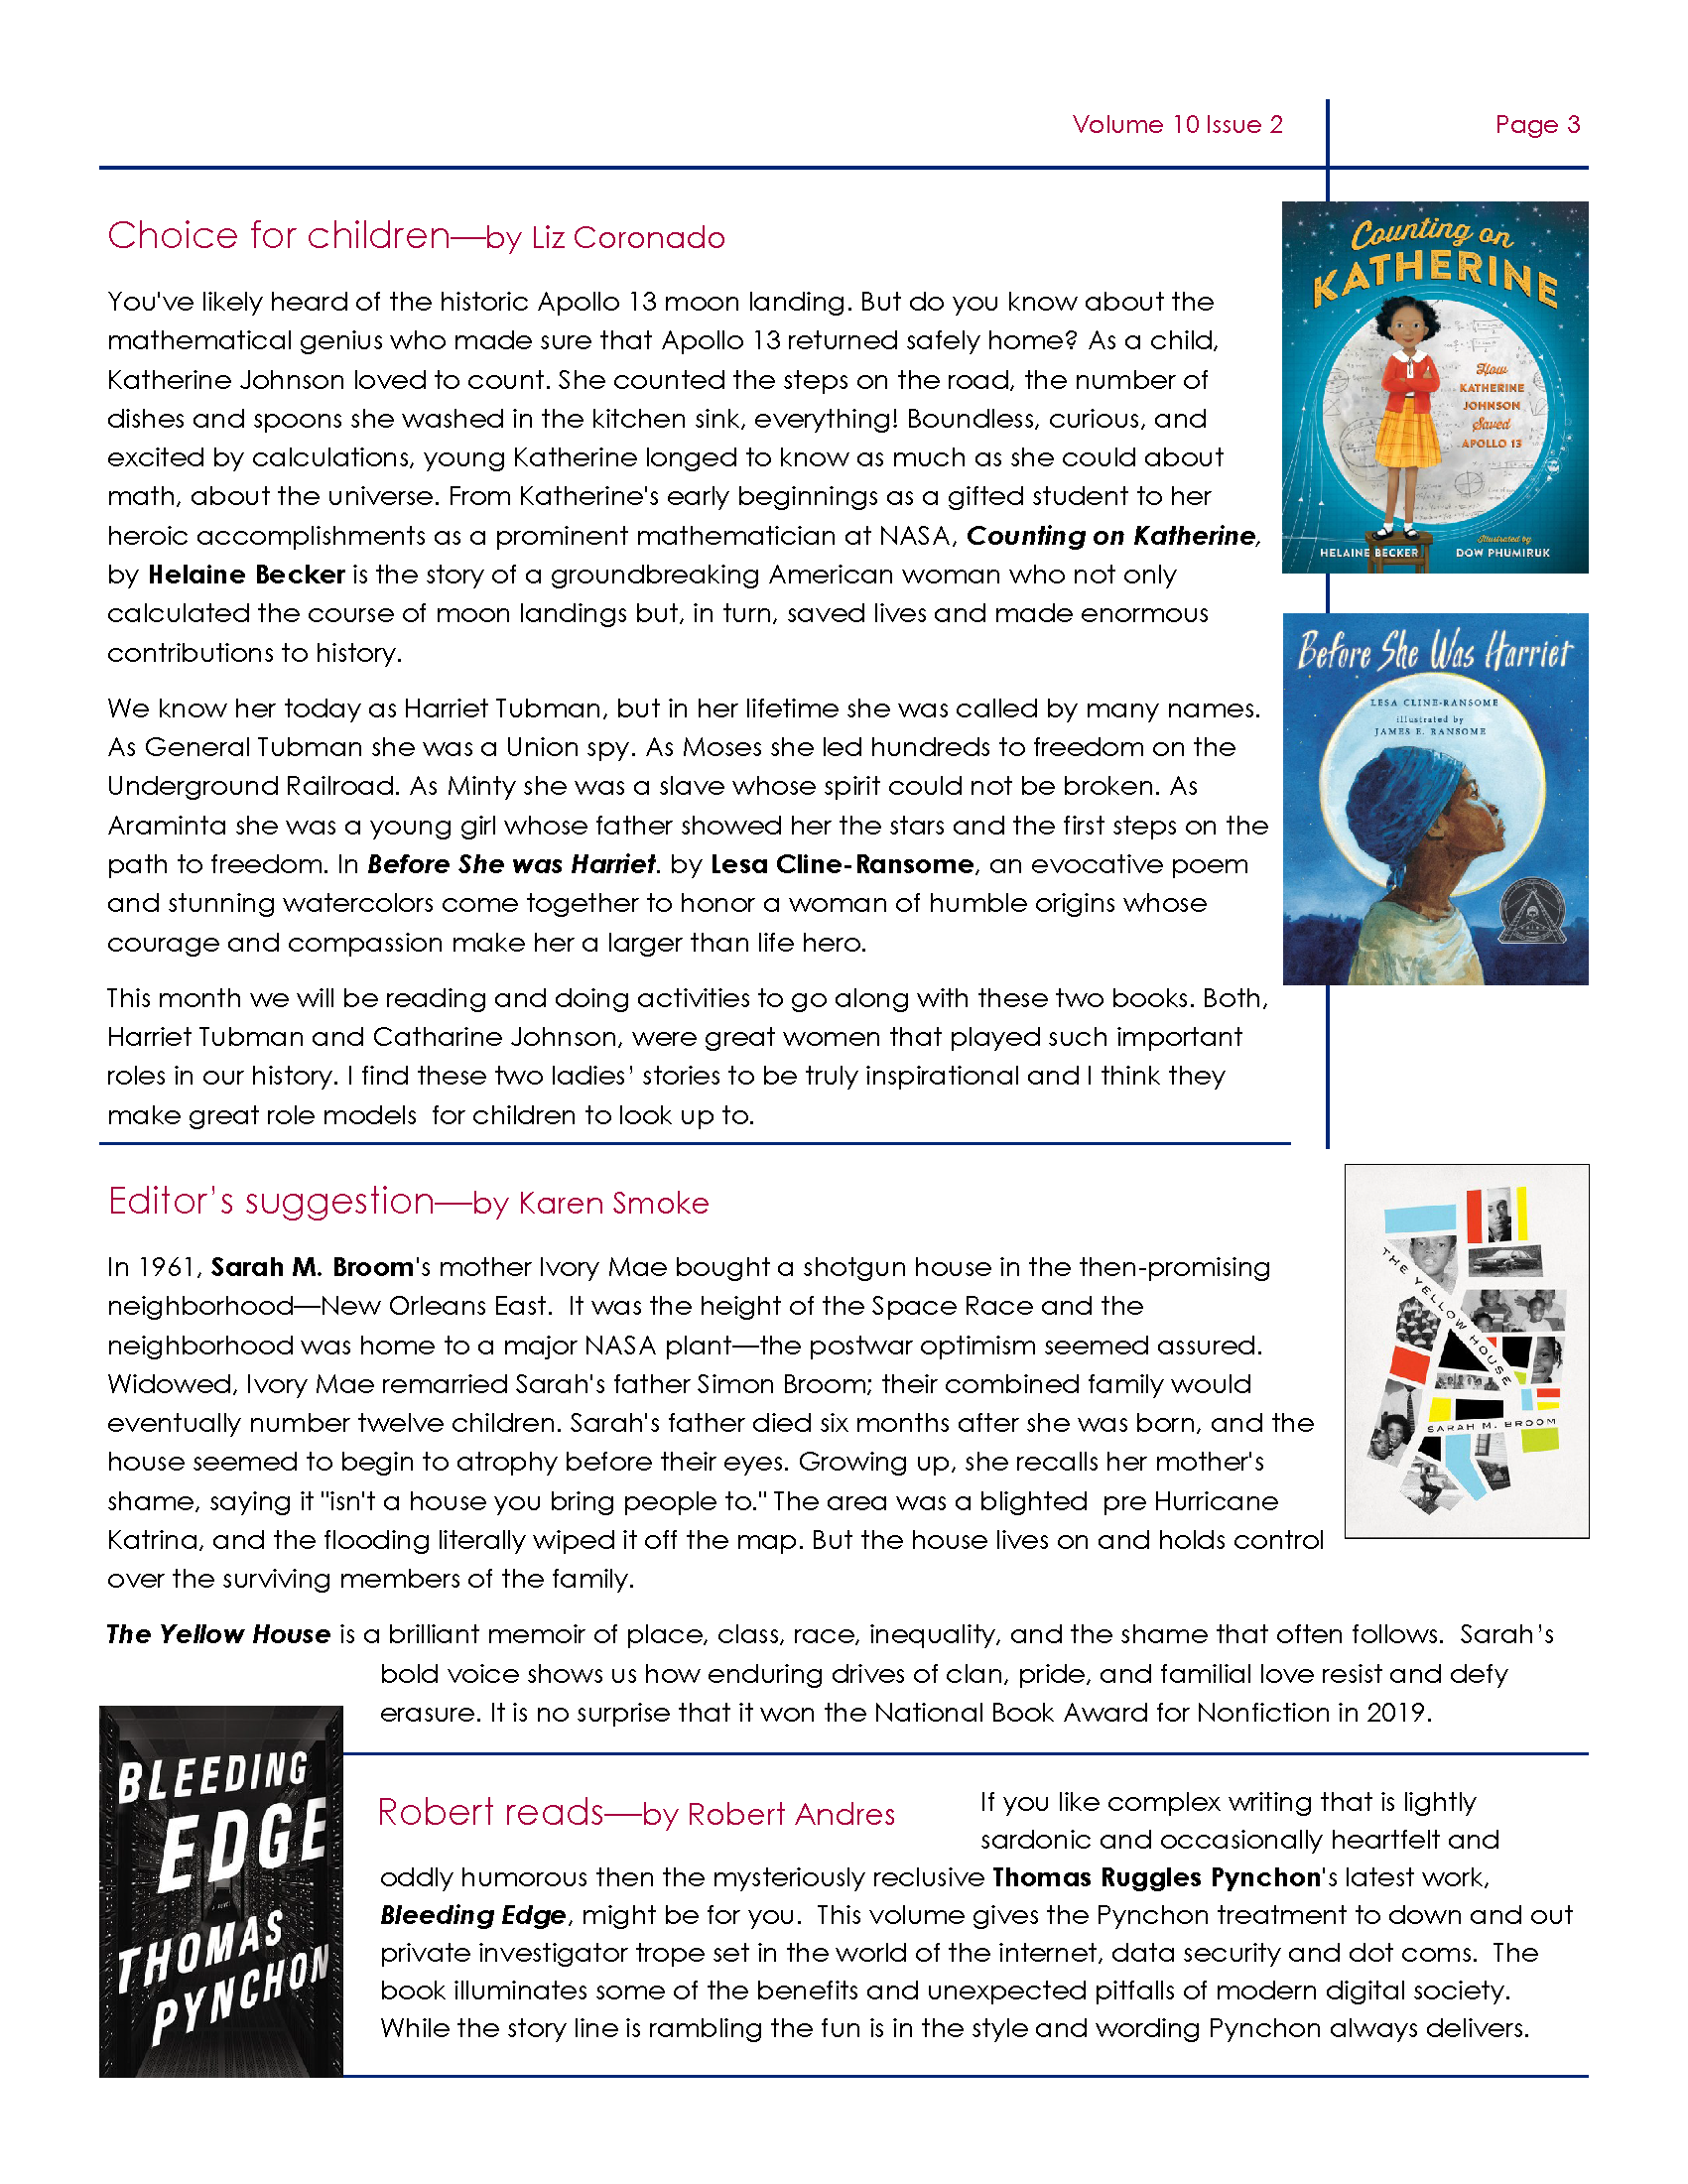 Page 3 Friends of DeSoto County Library Association February Newsletter. Downloadable PDF Available.